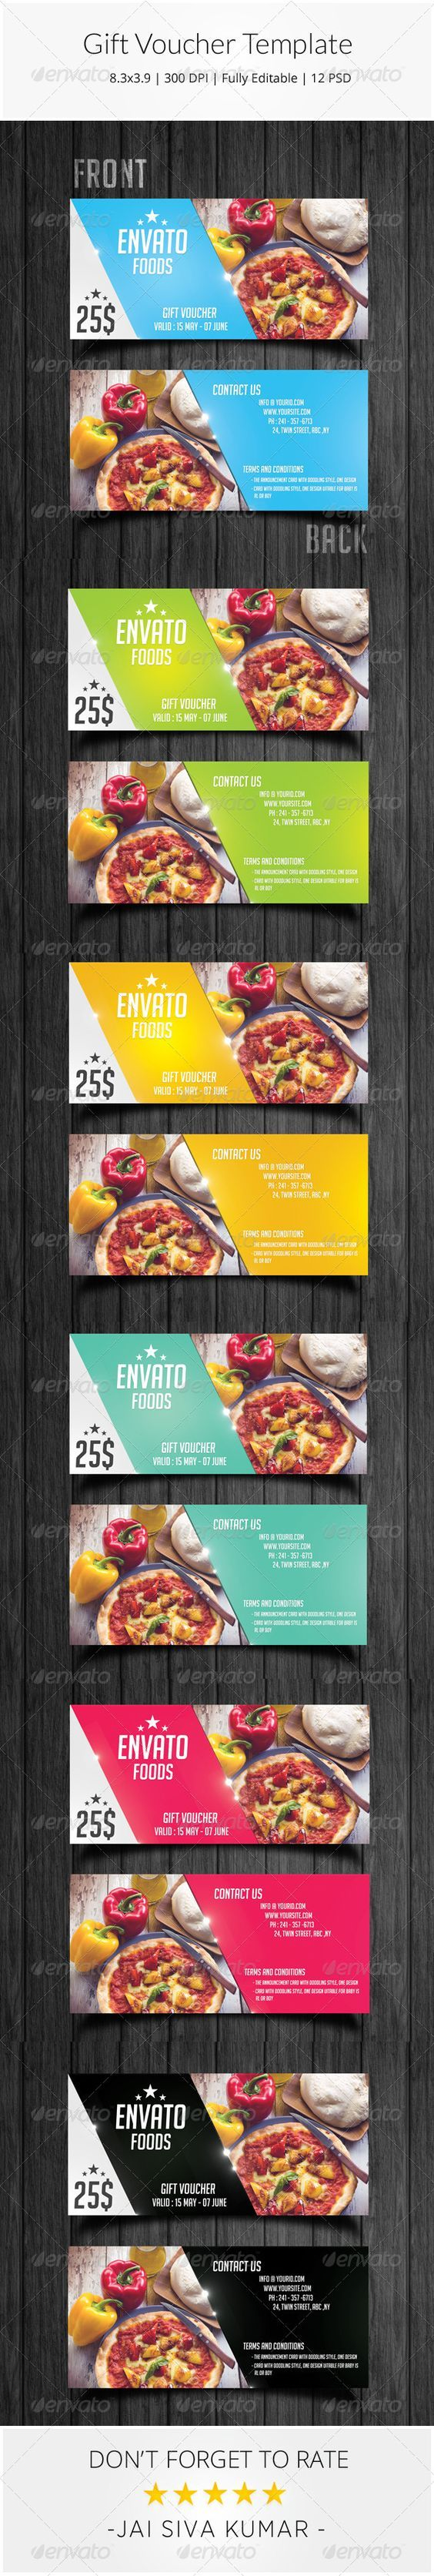 Gift Food Voucher Template PSD | Buy and Download: http://graphicriver.net/item/gift-voucher-template/8613017?WT.ac=category_thumb&WT.z_author=jaisivakumar&ref=ksioks: